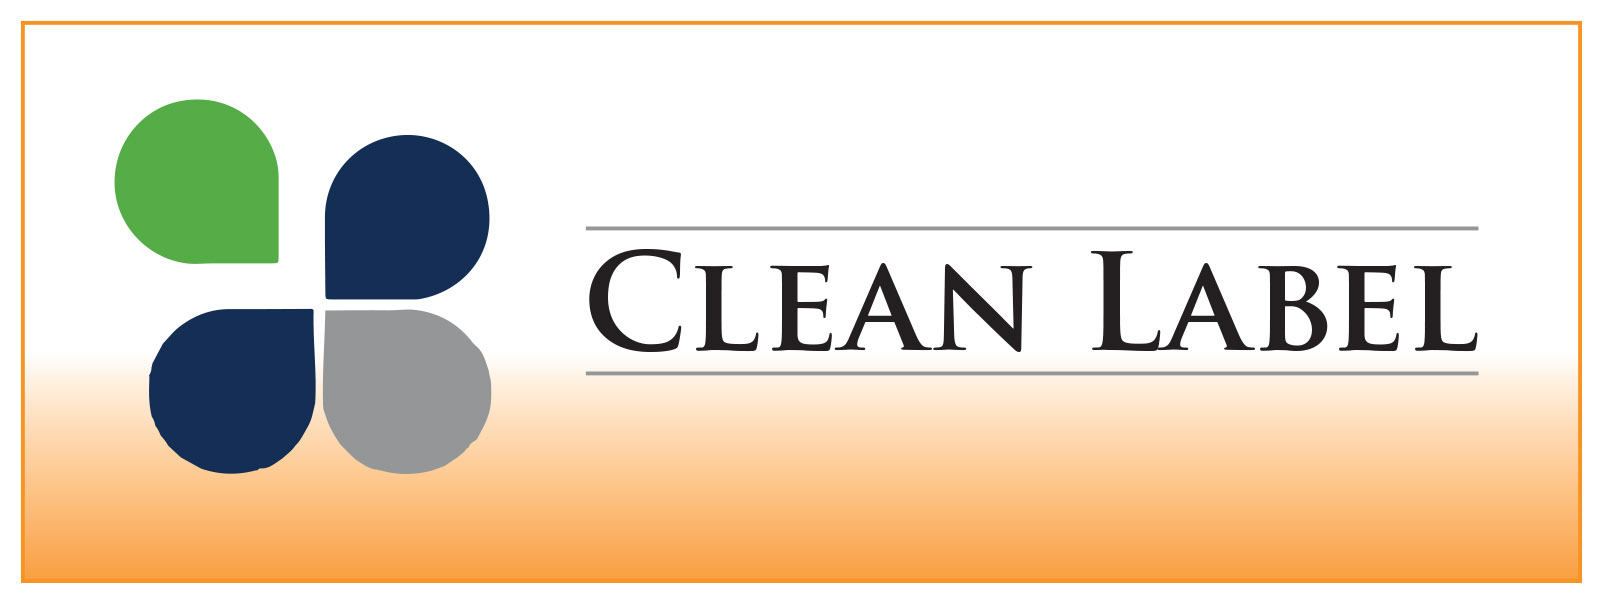 CLEAN Label Generic Logo